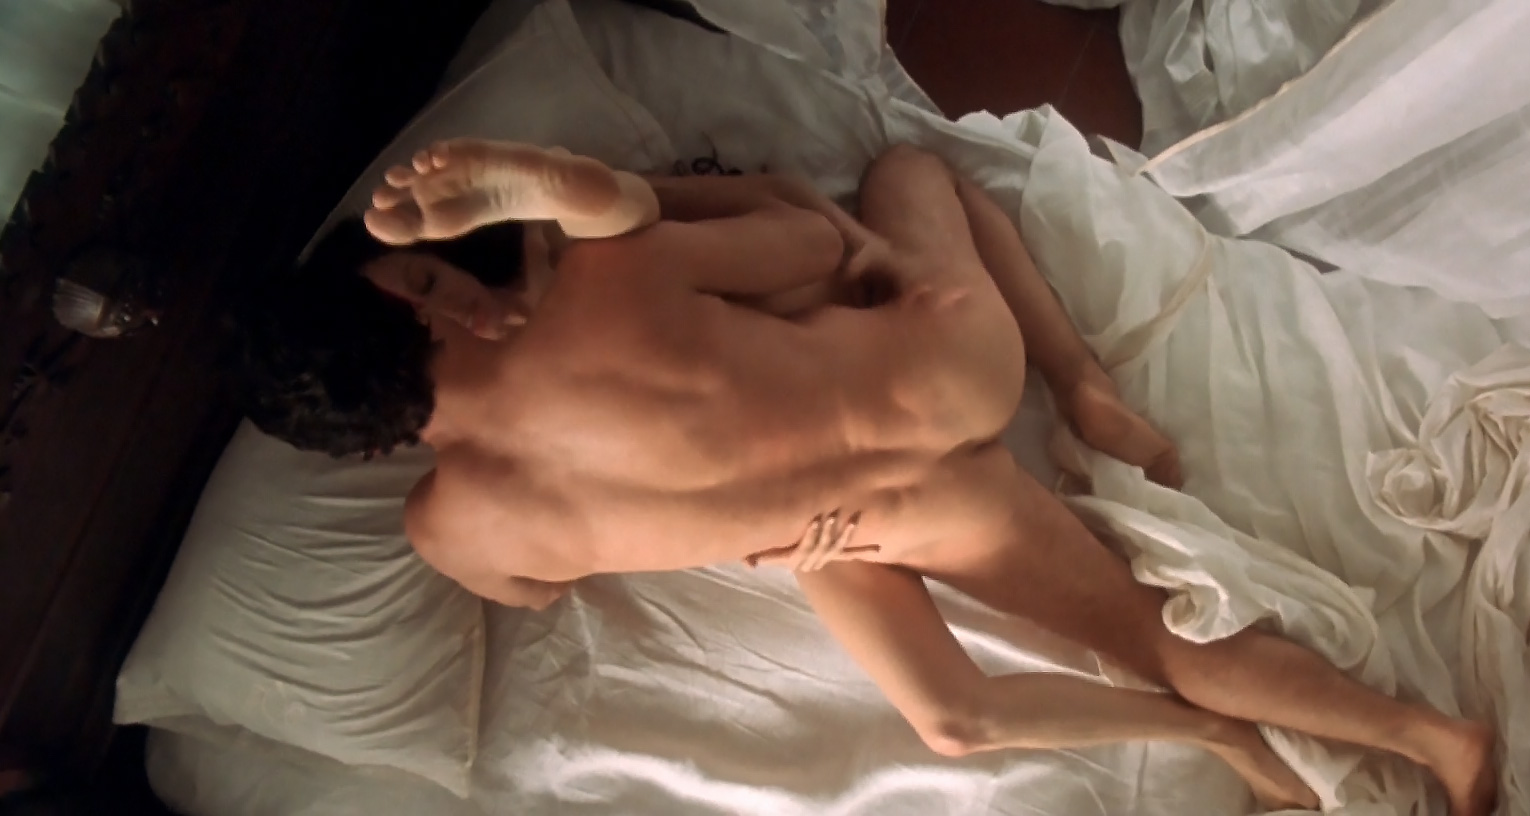 angelina jolie having sex in bed naked